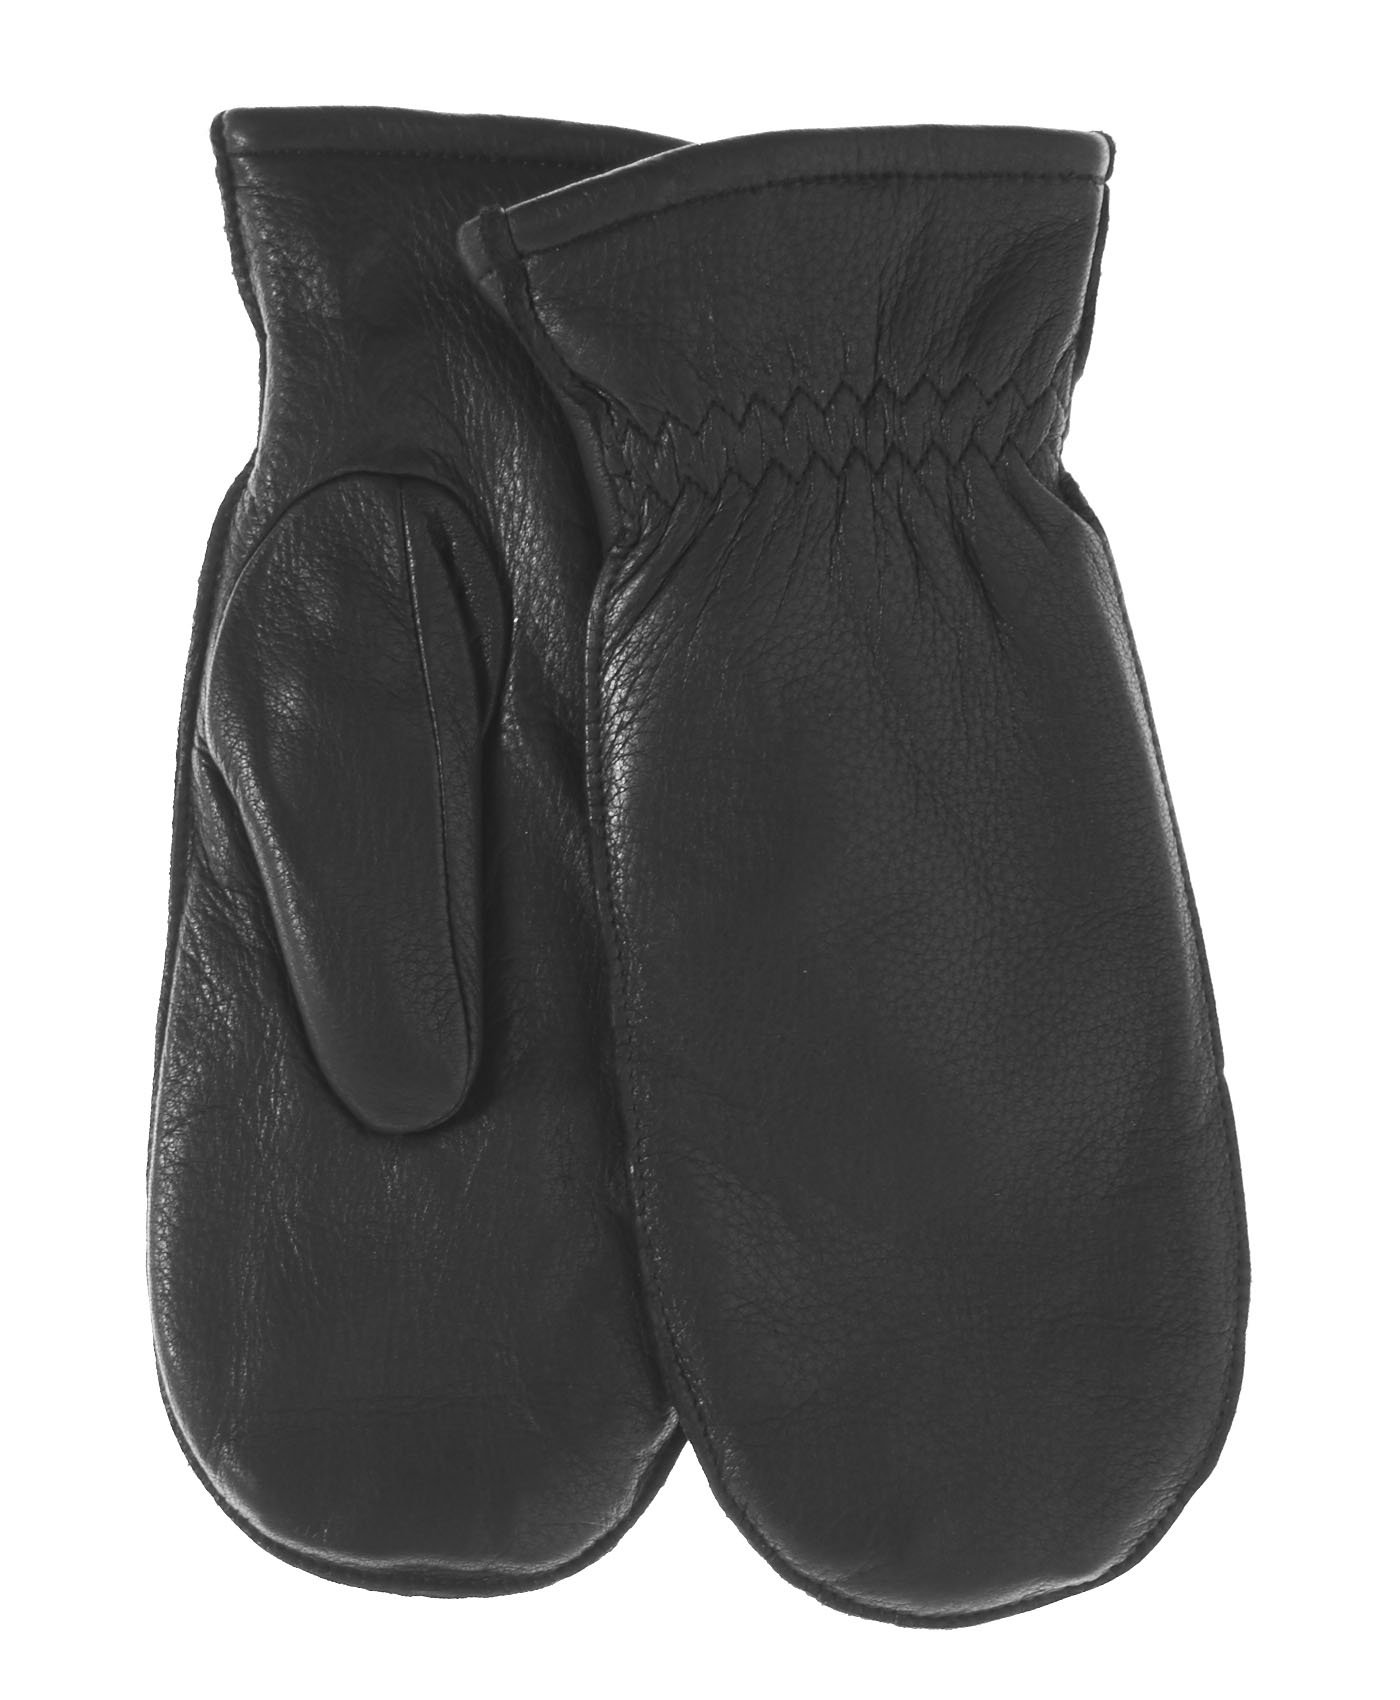 Pratt and Hart Women's Winter Deerskin Leather Mittens with Finger Liners Size L Color Black